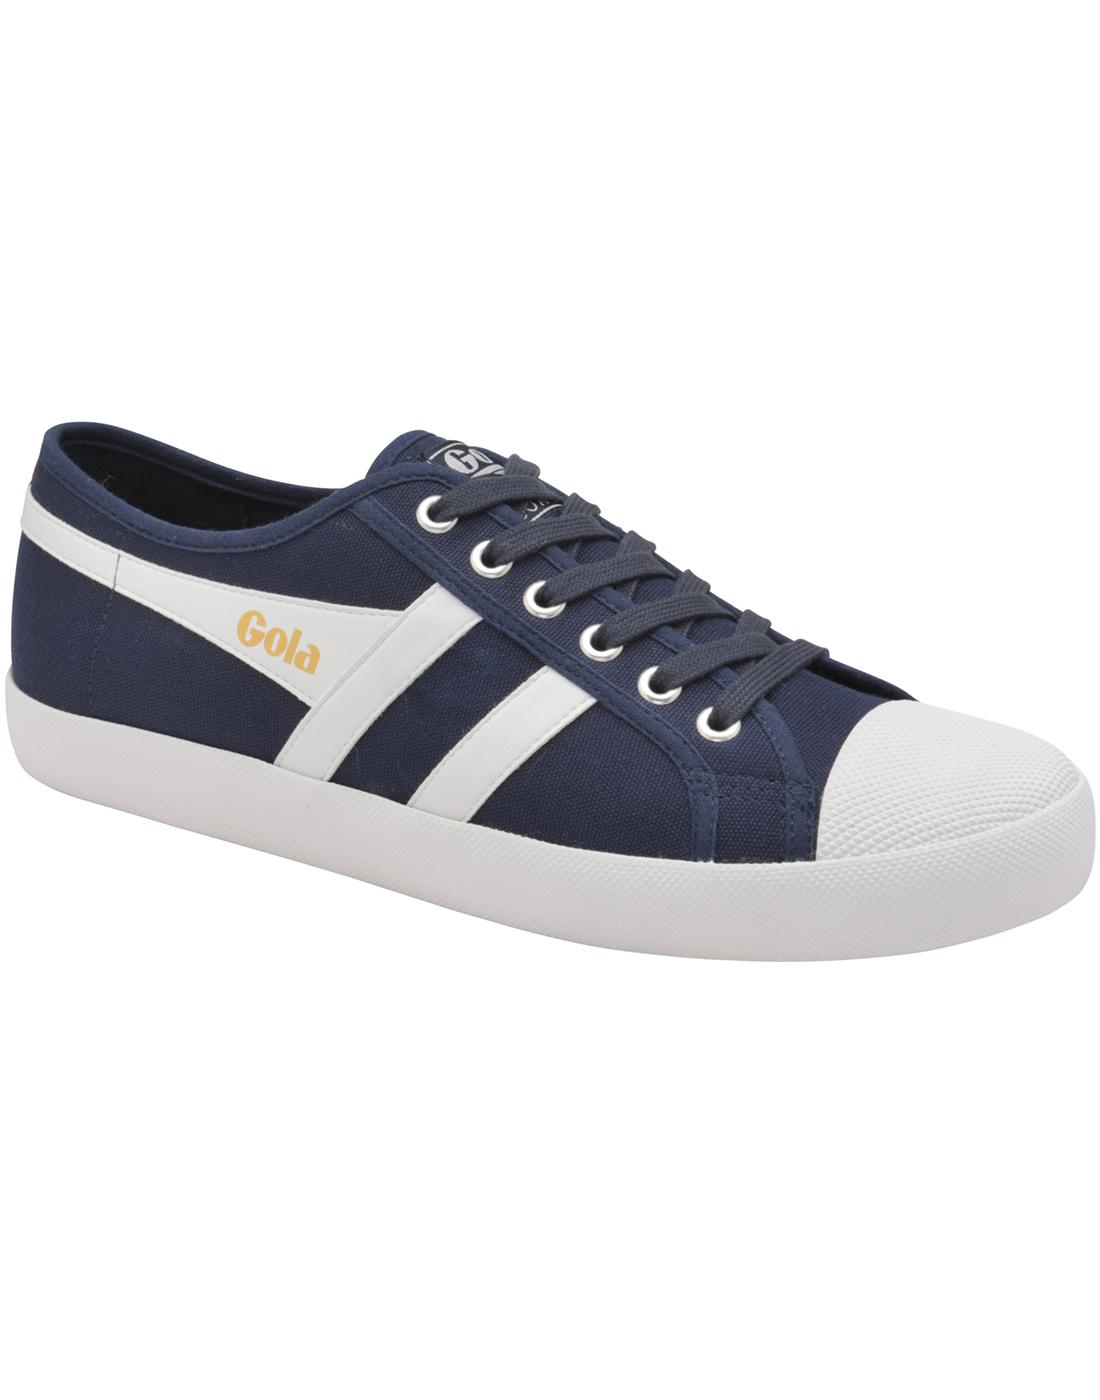 Coaster GOLA Mens Retro 70s Canvas Trainers (NWR)